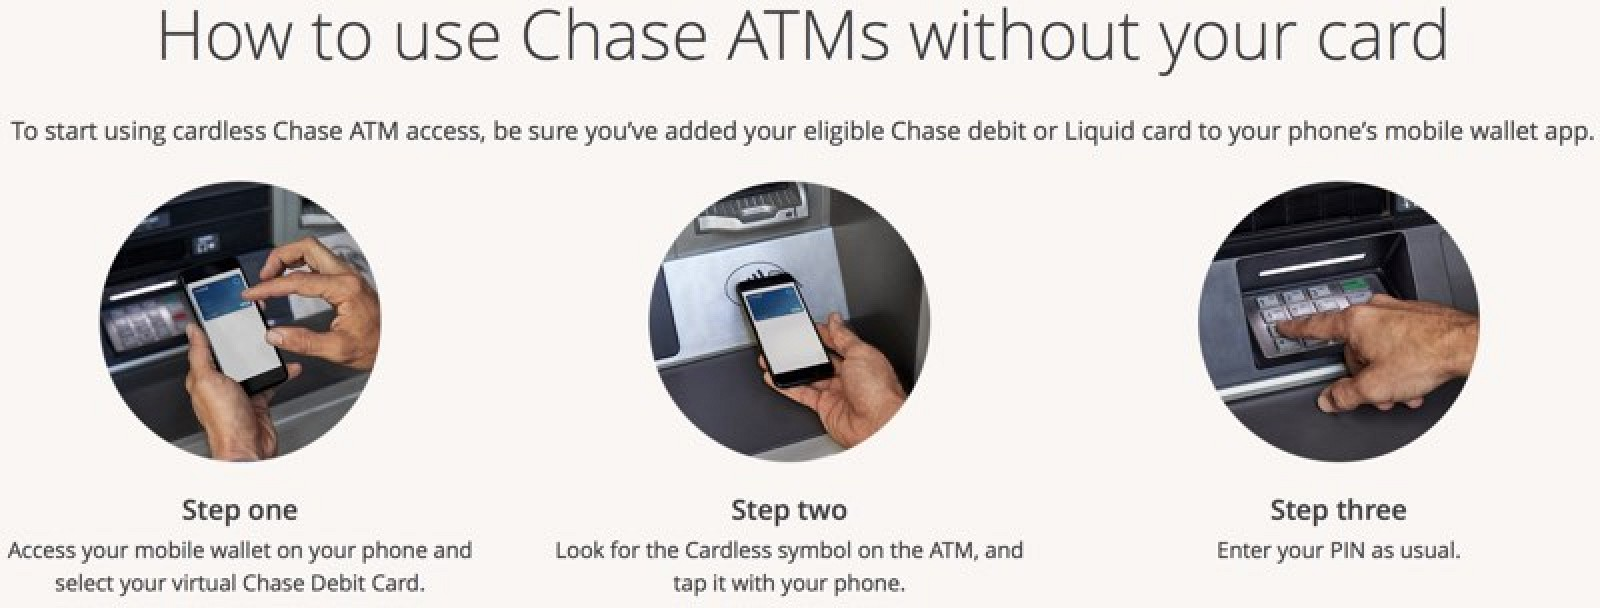 Apple Pay Now Available at Nearly 16,000 Cardless Chase ATMs - MacRumors